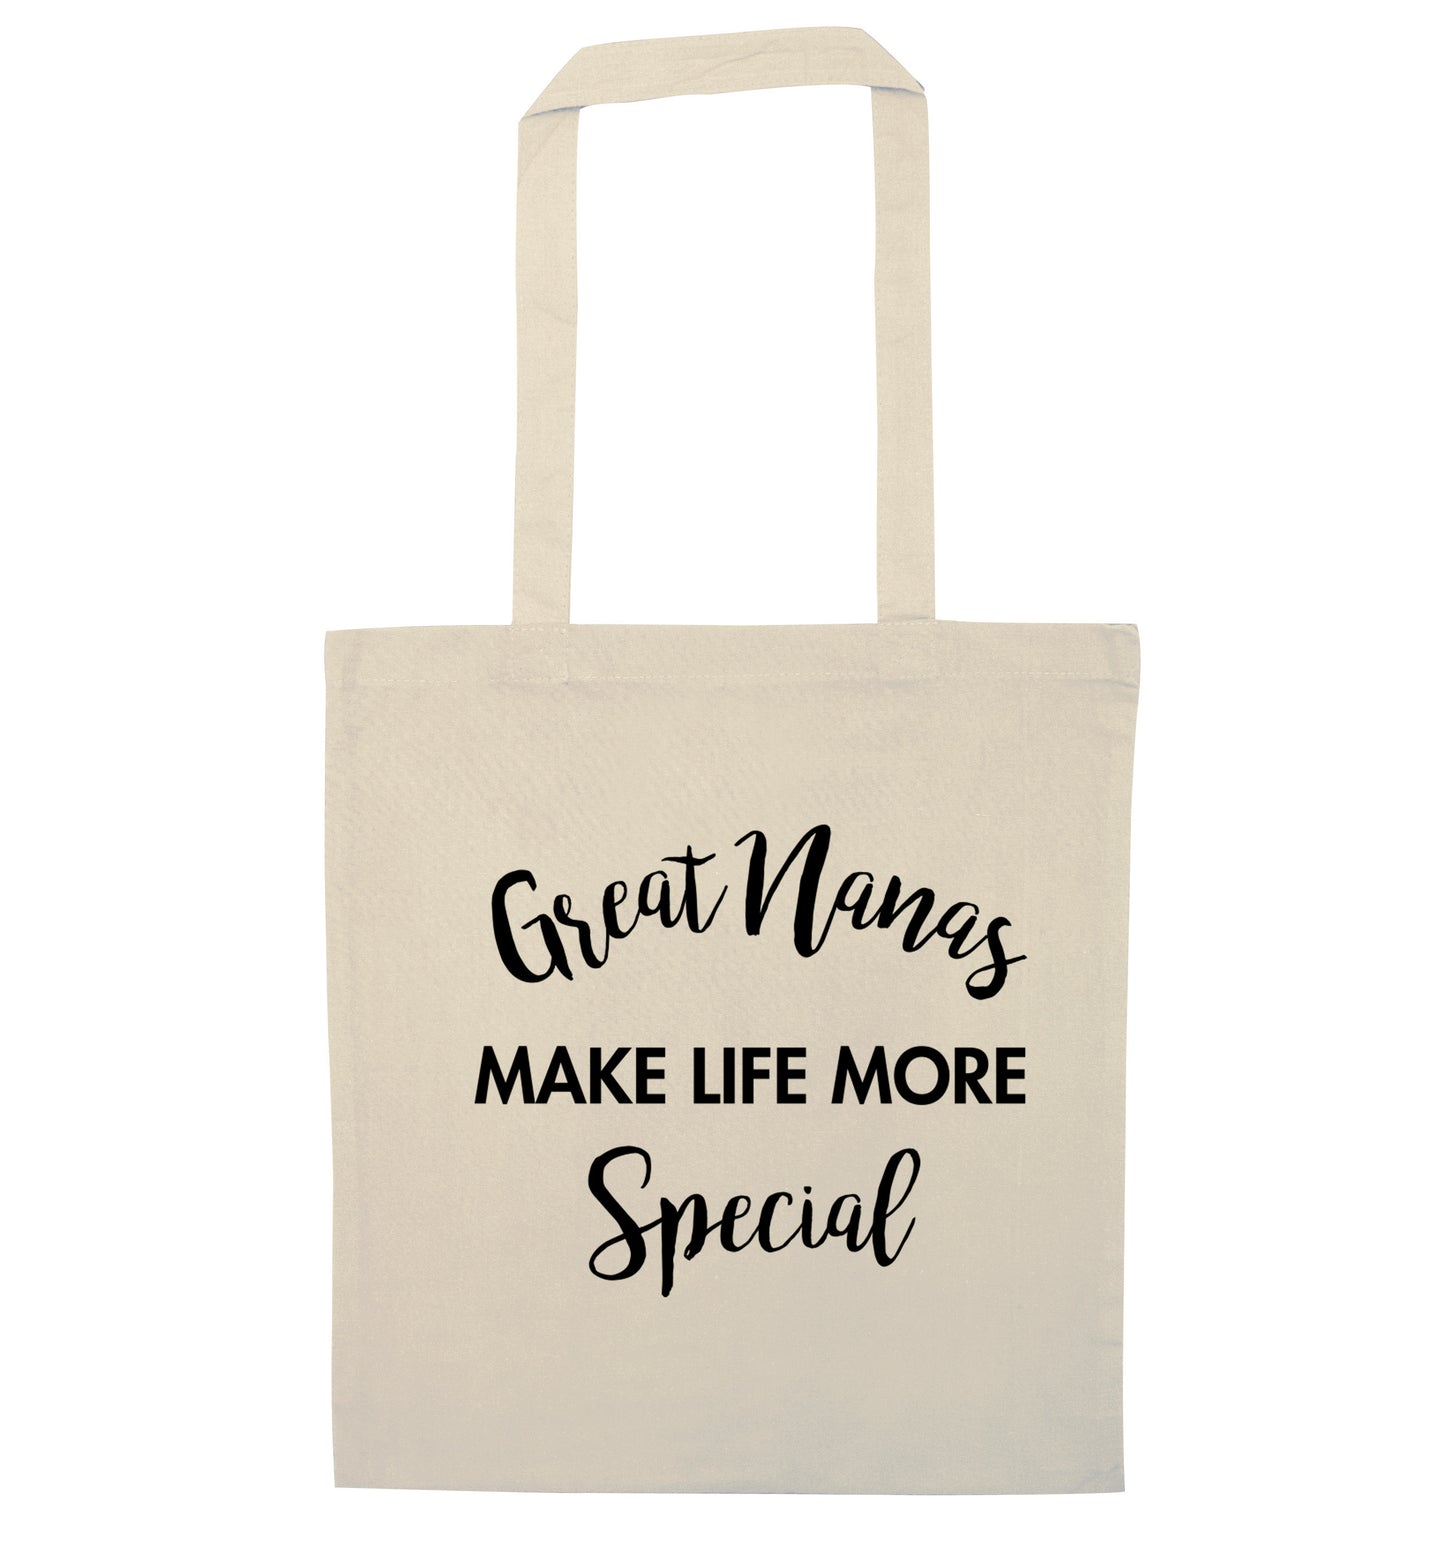 Great nanas make life more special natural tote bag